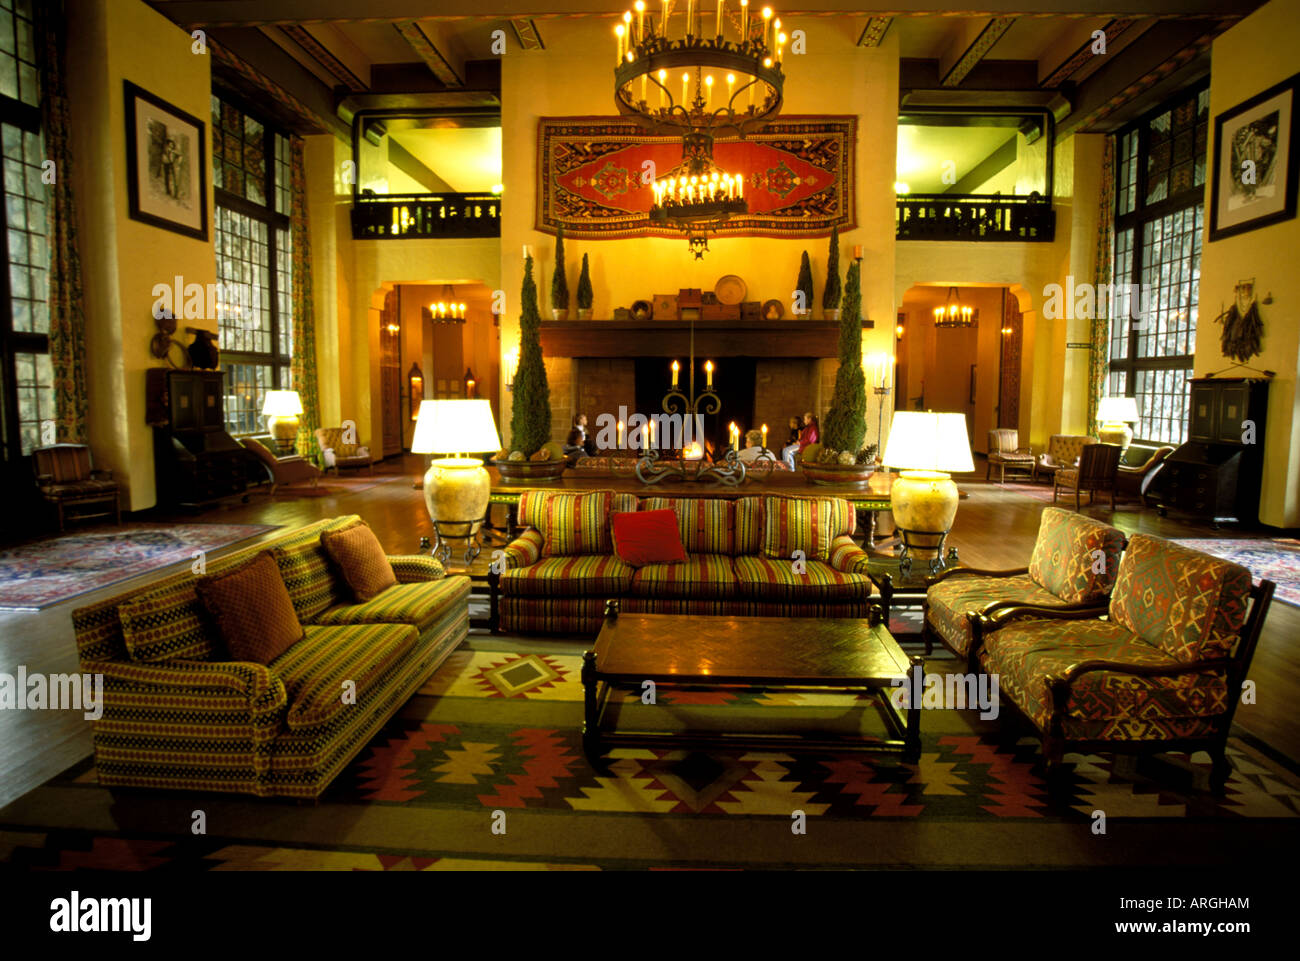 ahwahnee hotel stock photos ahwahnee hotel stock images alamy native american motifs are used to decorate the great lounge in the ahwahnee hotel at yosemite